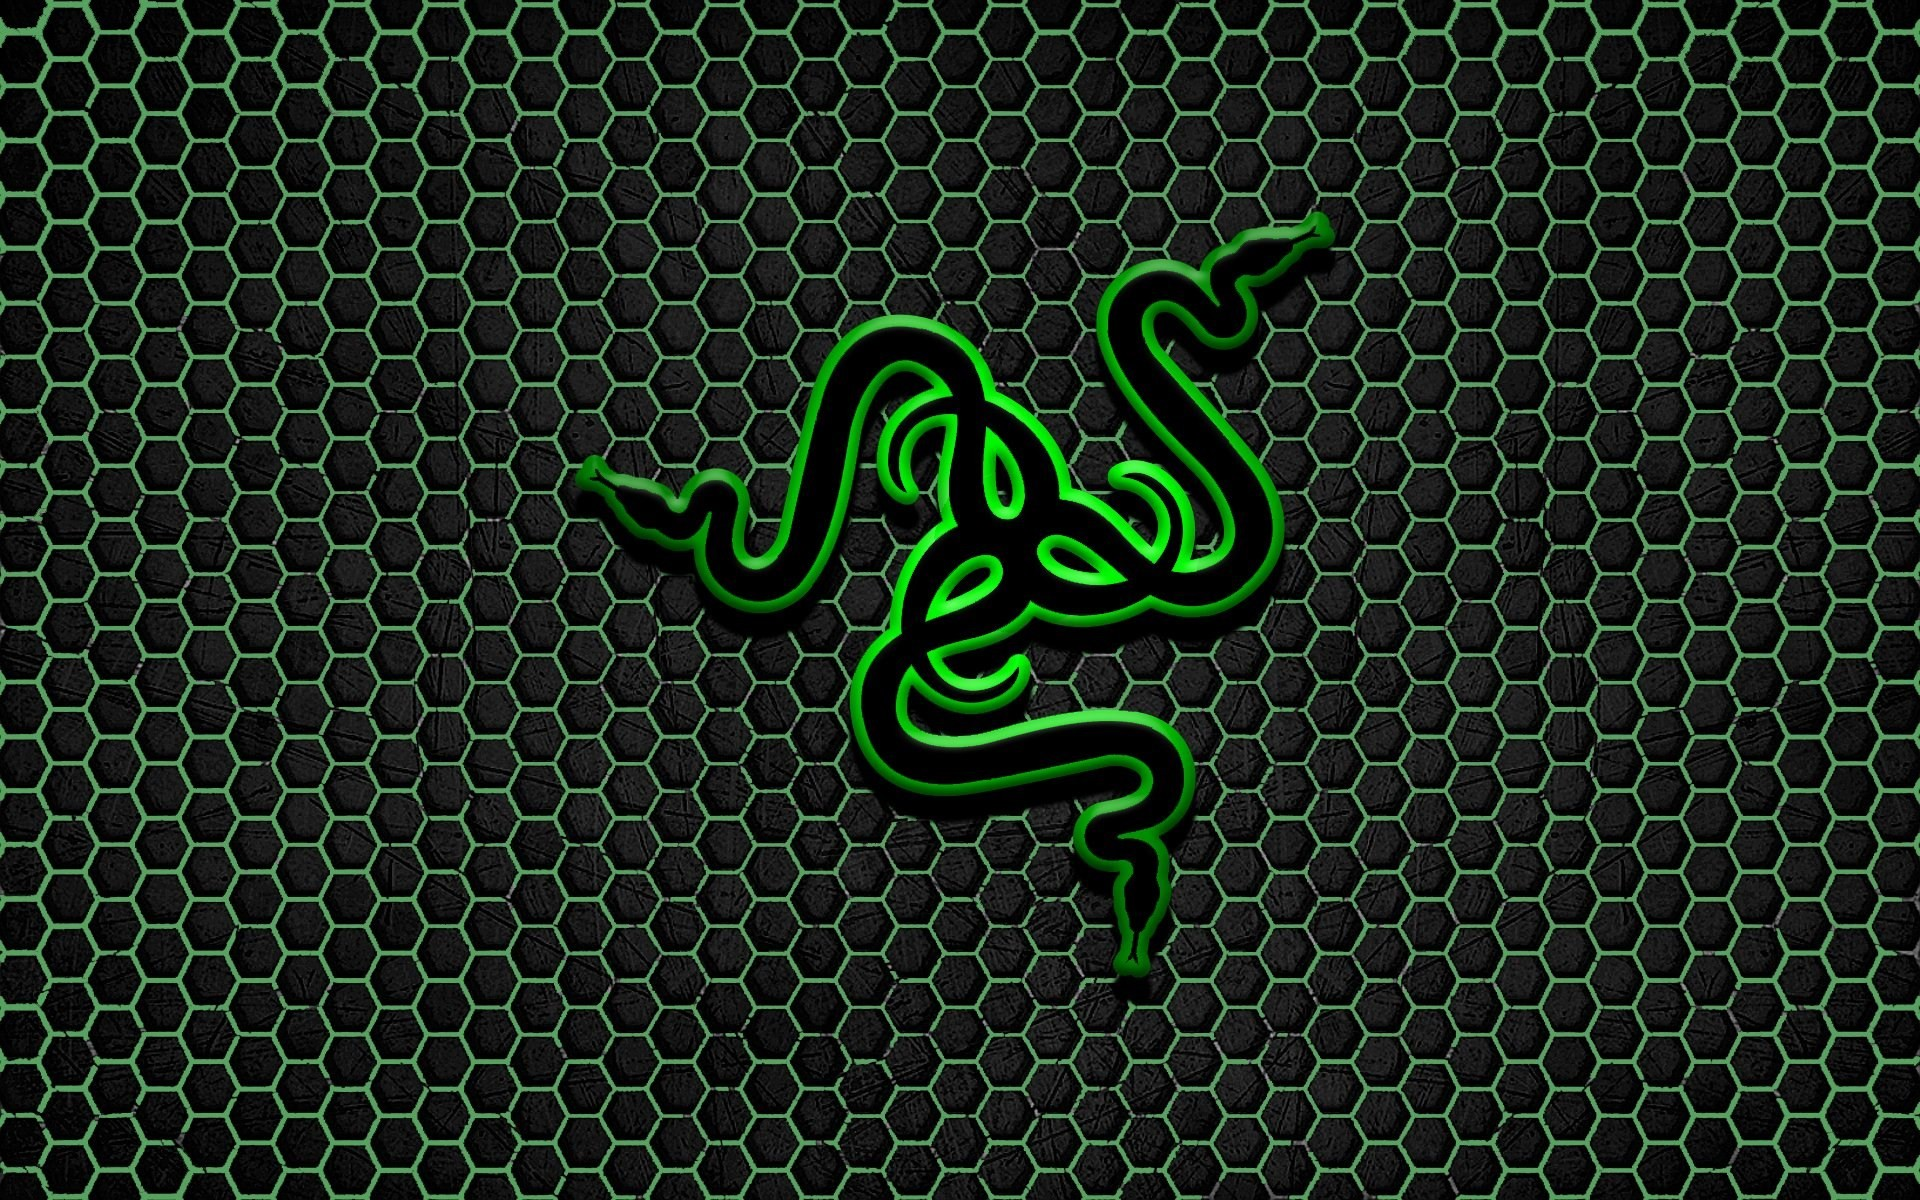 razer background 1920x1080